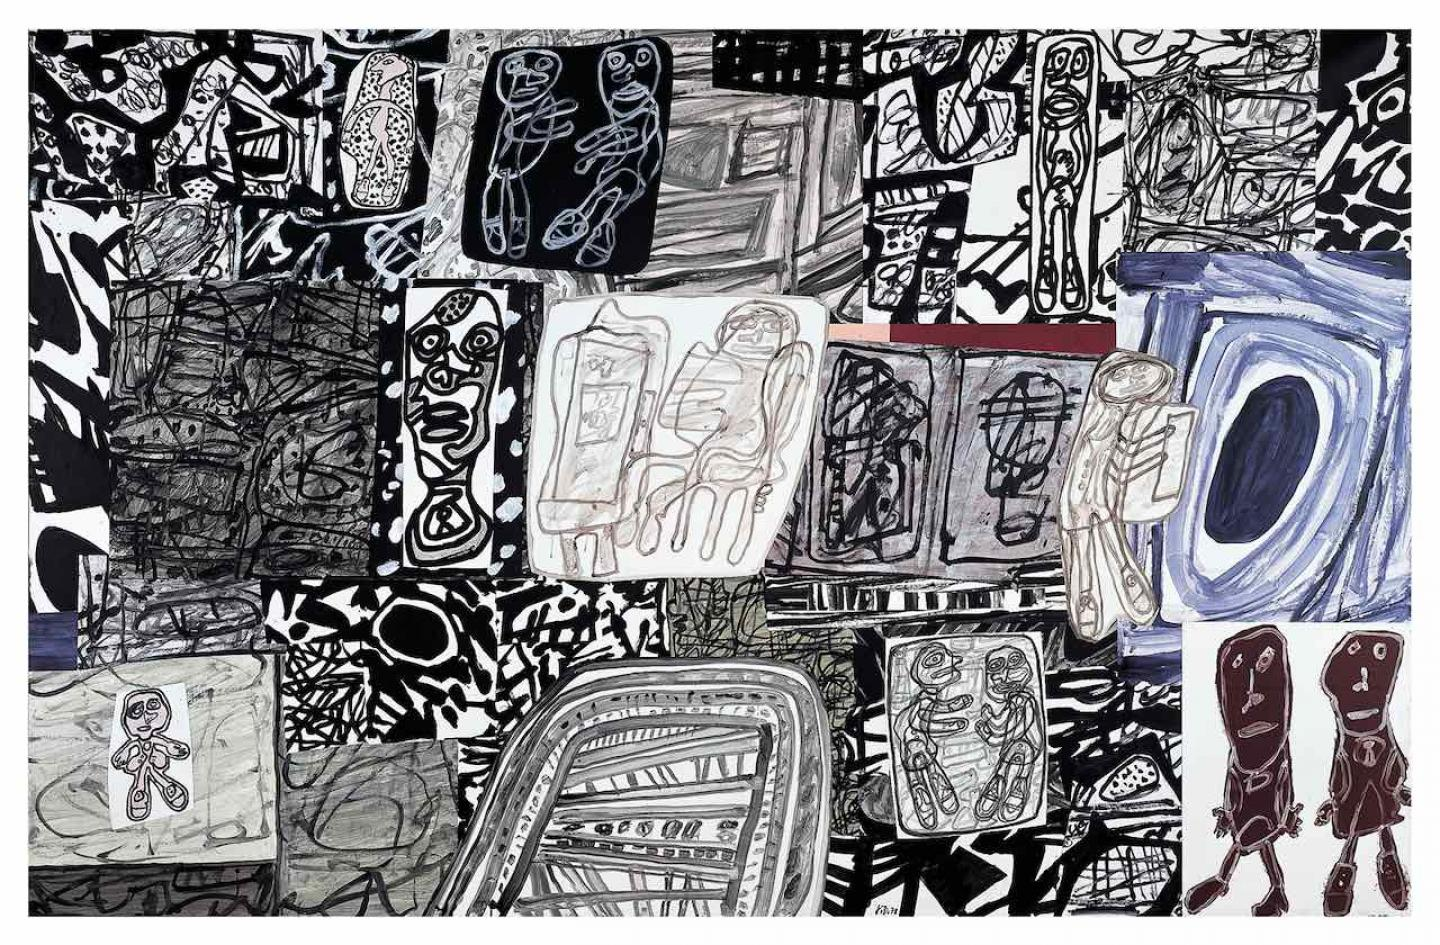 Dramatisation Jean Dubuffet 12 janvier 1978 Collage de 42 pièces acryliques sur papier marouflé sur toile. 210 x 328 cm Collection Fondation Dubuffet, Paris Photo :pour la Suisse © Fondation Dubuffet / 2020, ProLitteris, Zurich pour la France © Fondation Dubuffet / 2020, ADAGP, Paris